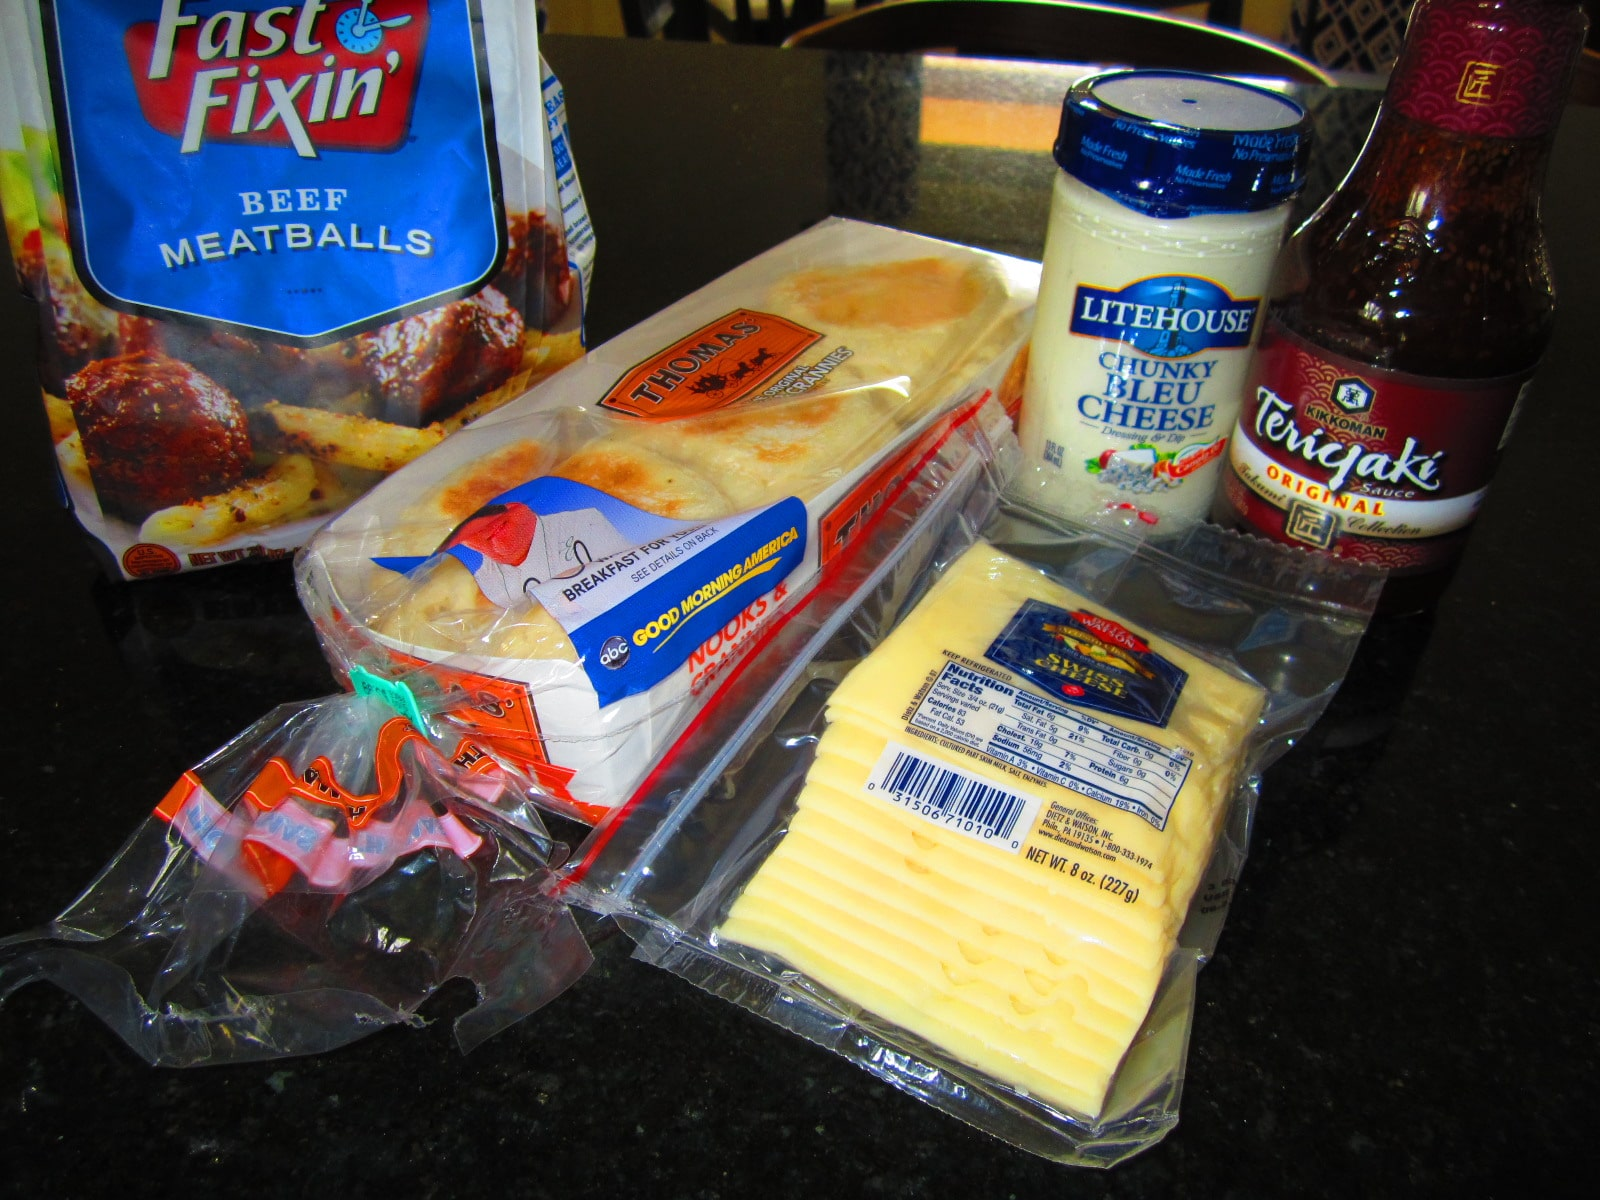 ingredients for bleu cheese meatball sandwich